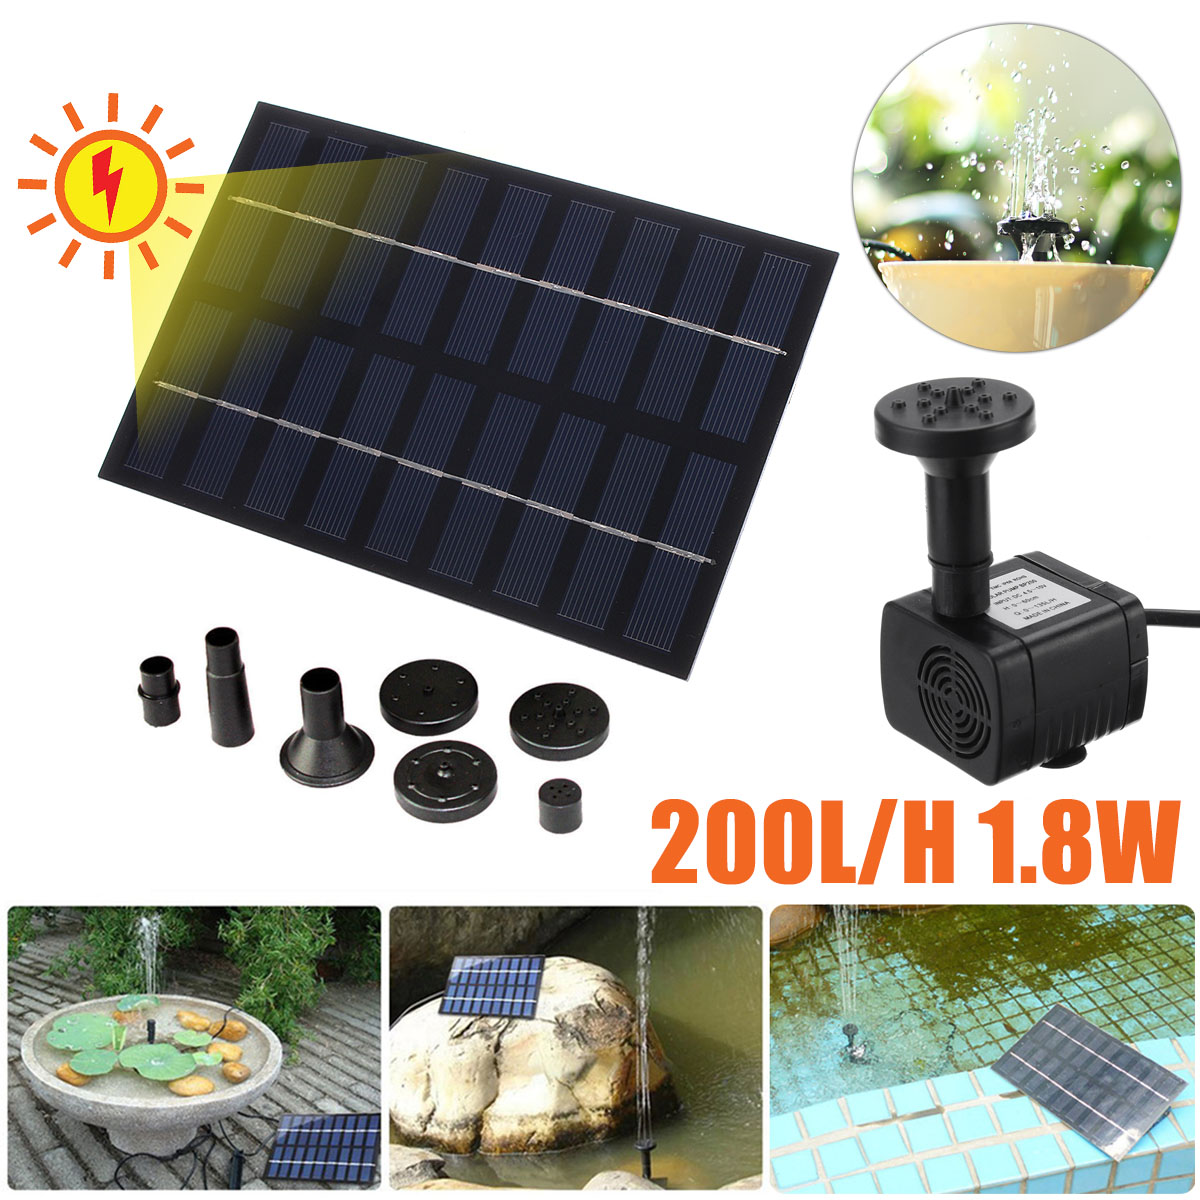 Waterproof Solar Water Pump 200L/H Solar Panel Power Fountains Water Pumps Garden Pool Pond Rockery Fountain Watering System